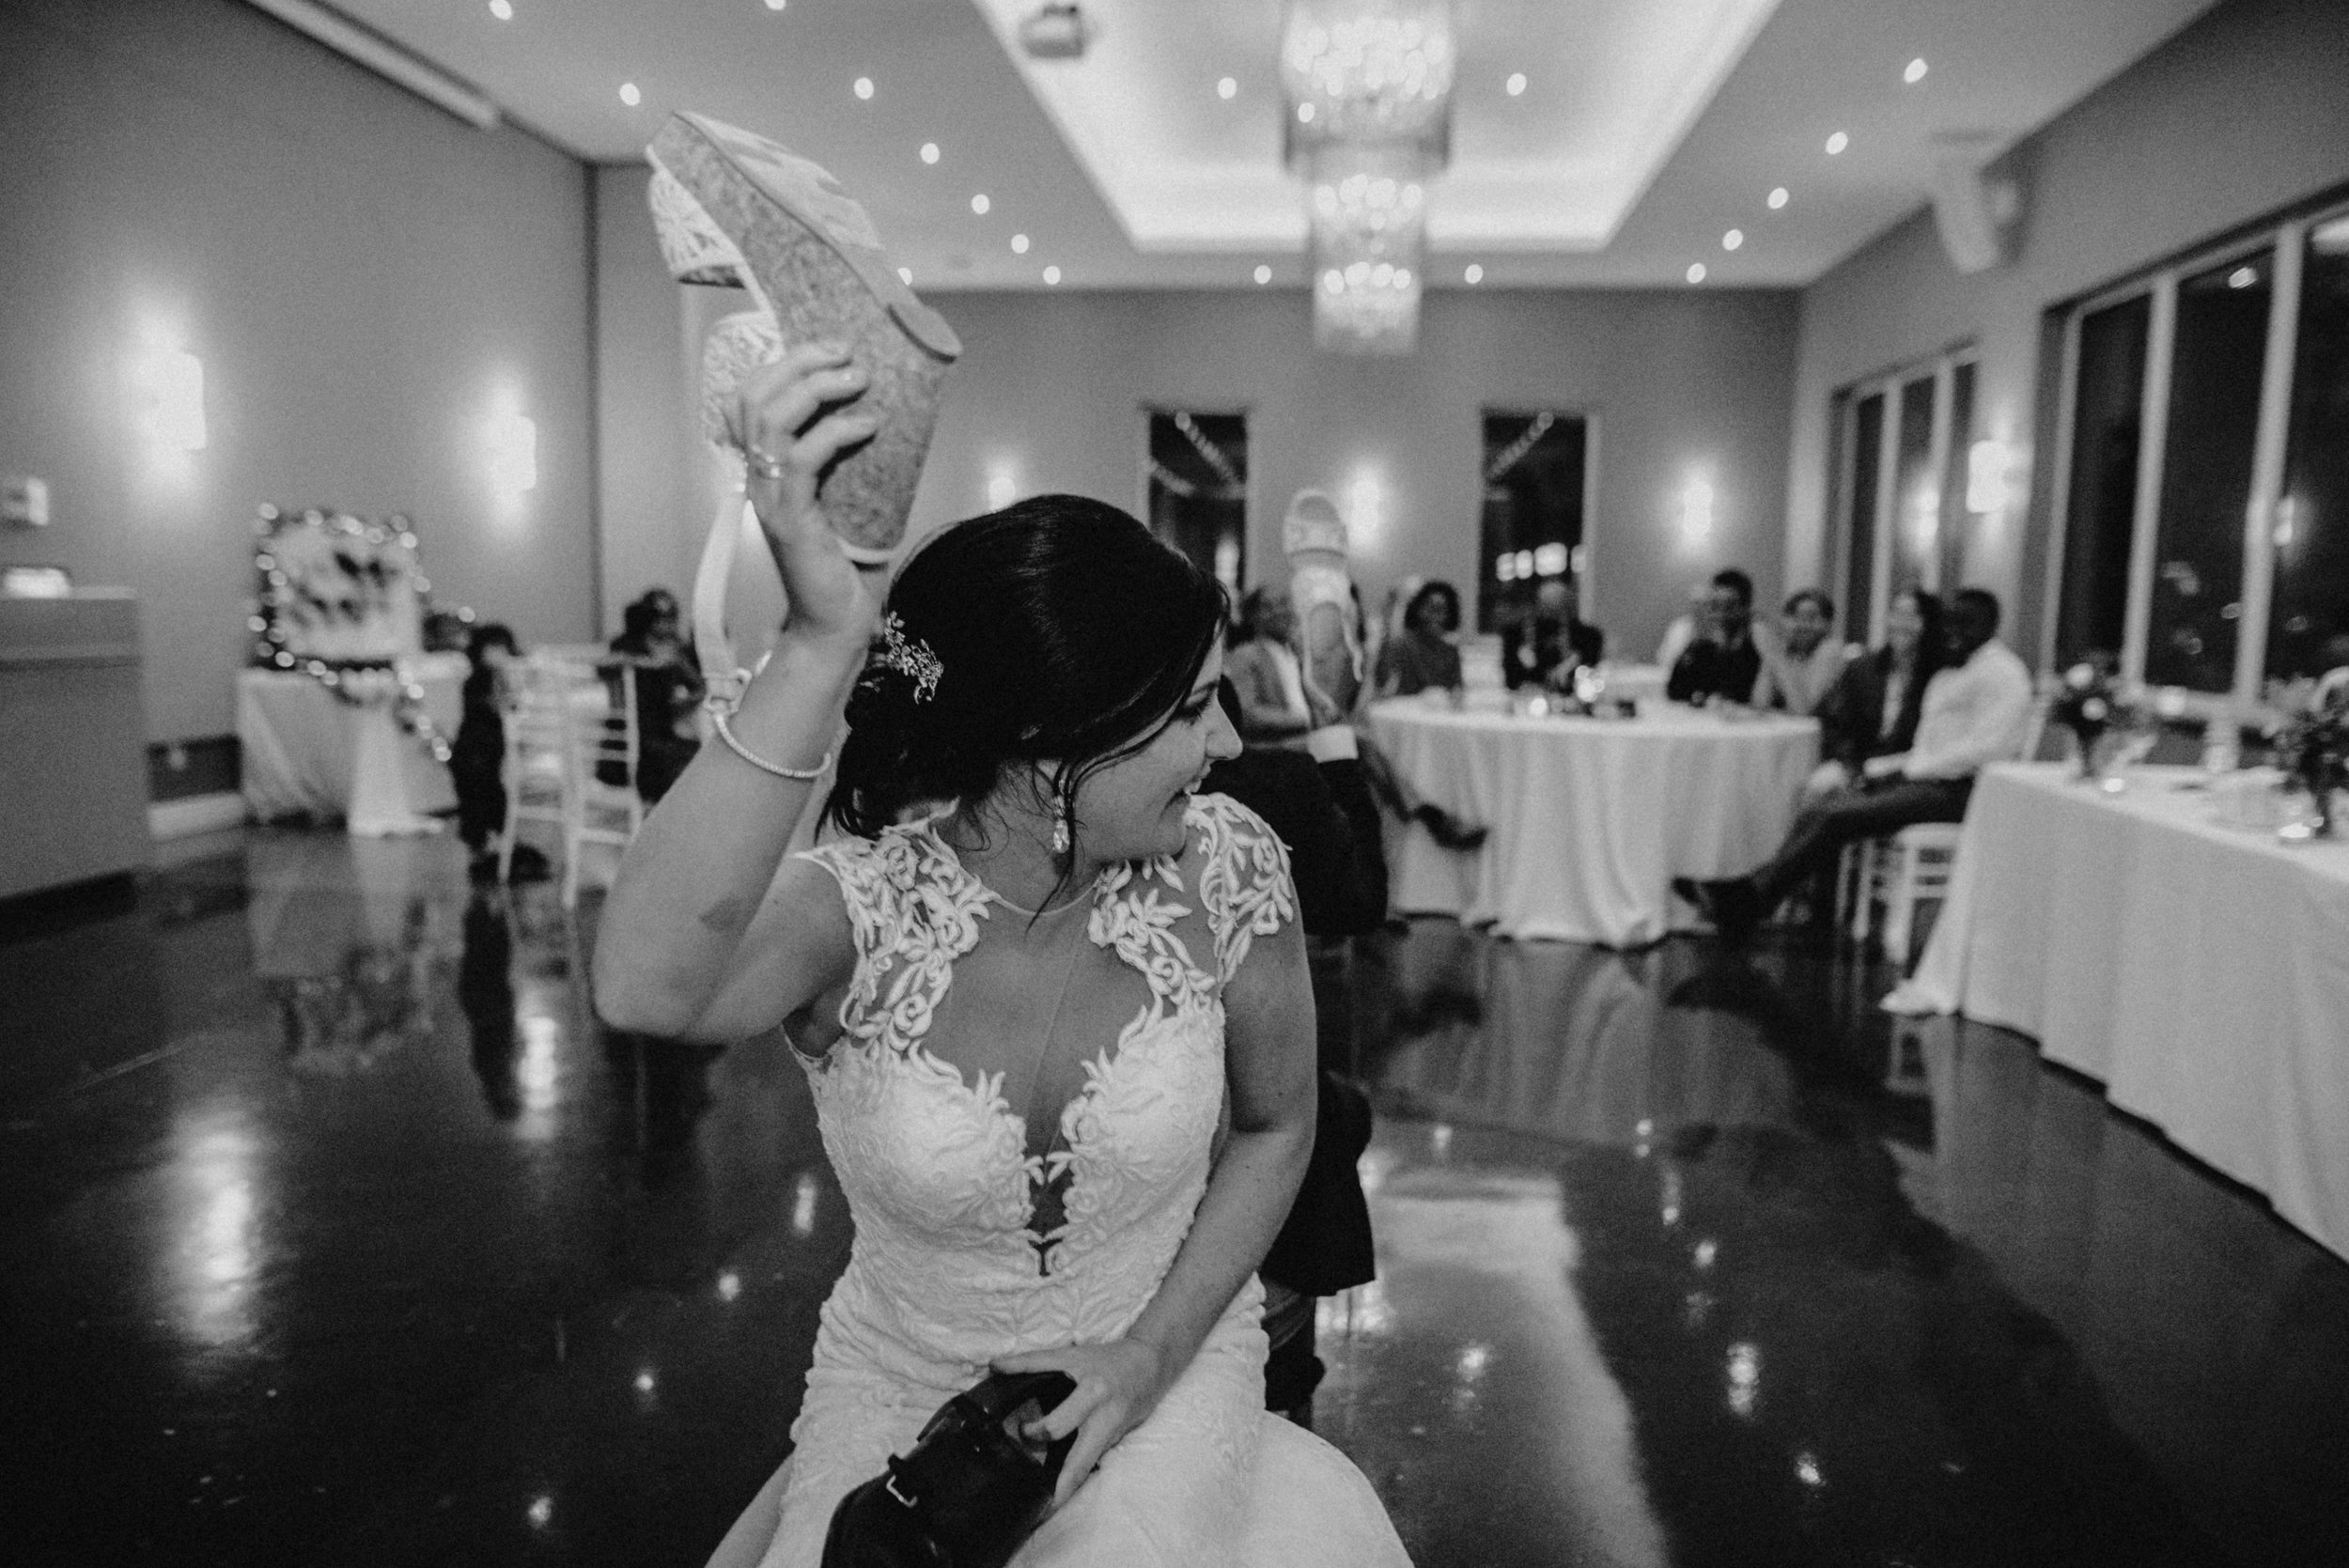 photographe_gatineau_mariage_ottawa_photographer_wedding_natasha_liard_photo_documentary_candid_lifestyle   (32).jpg